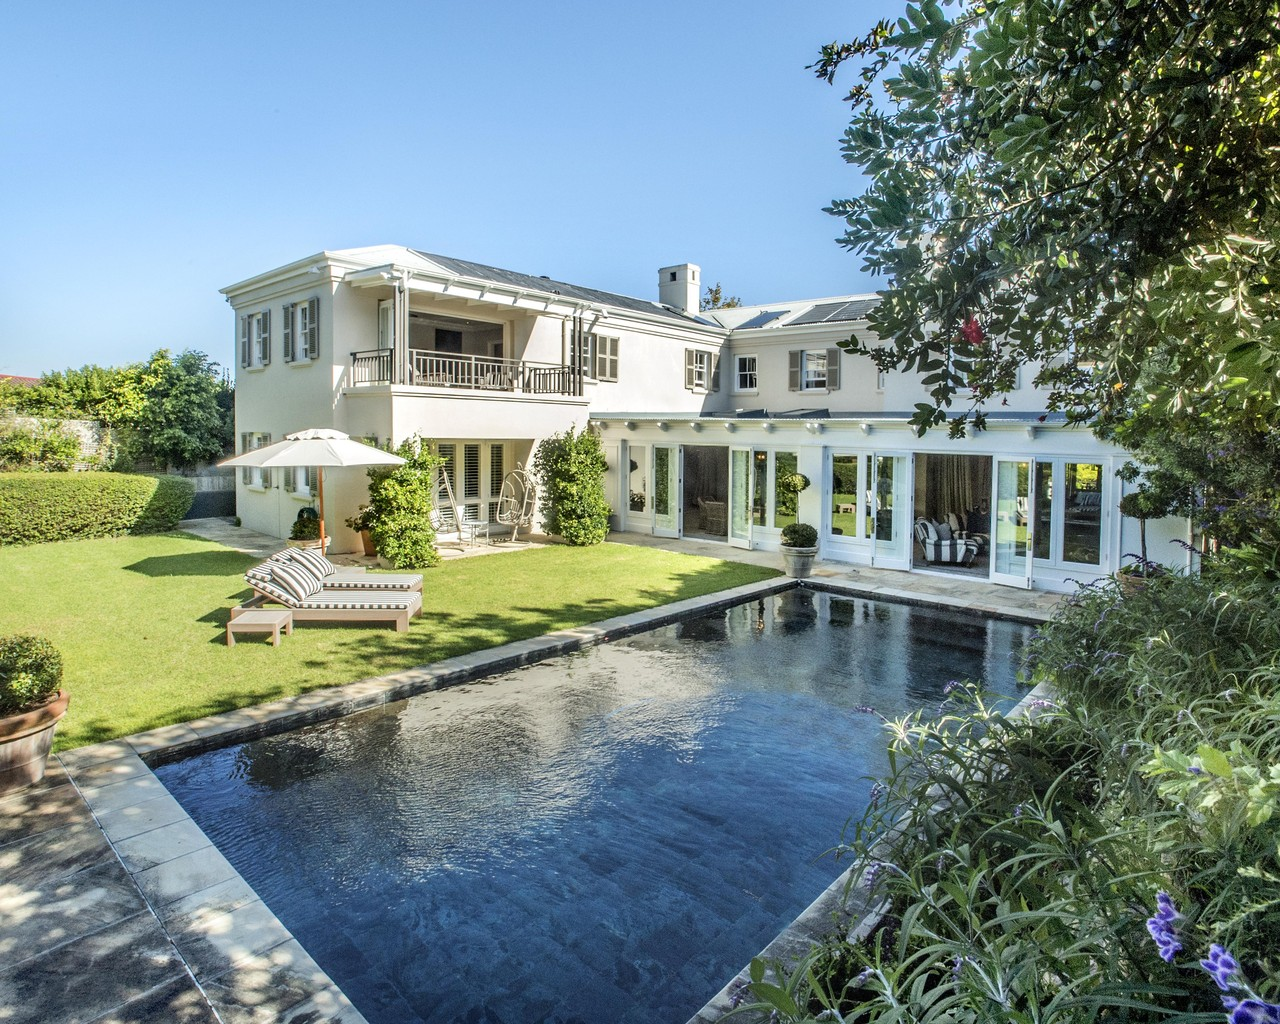 4 Bedroom House For Sale In Constantia Tyson Properties